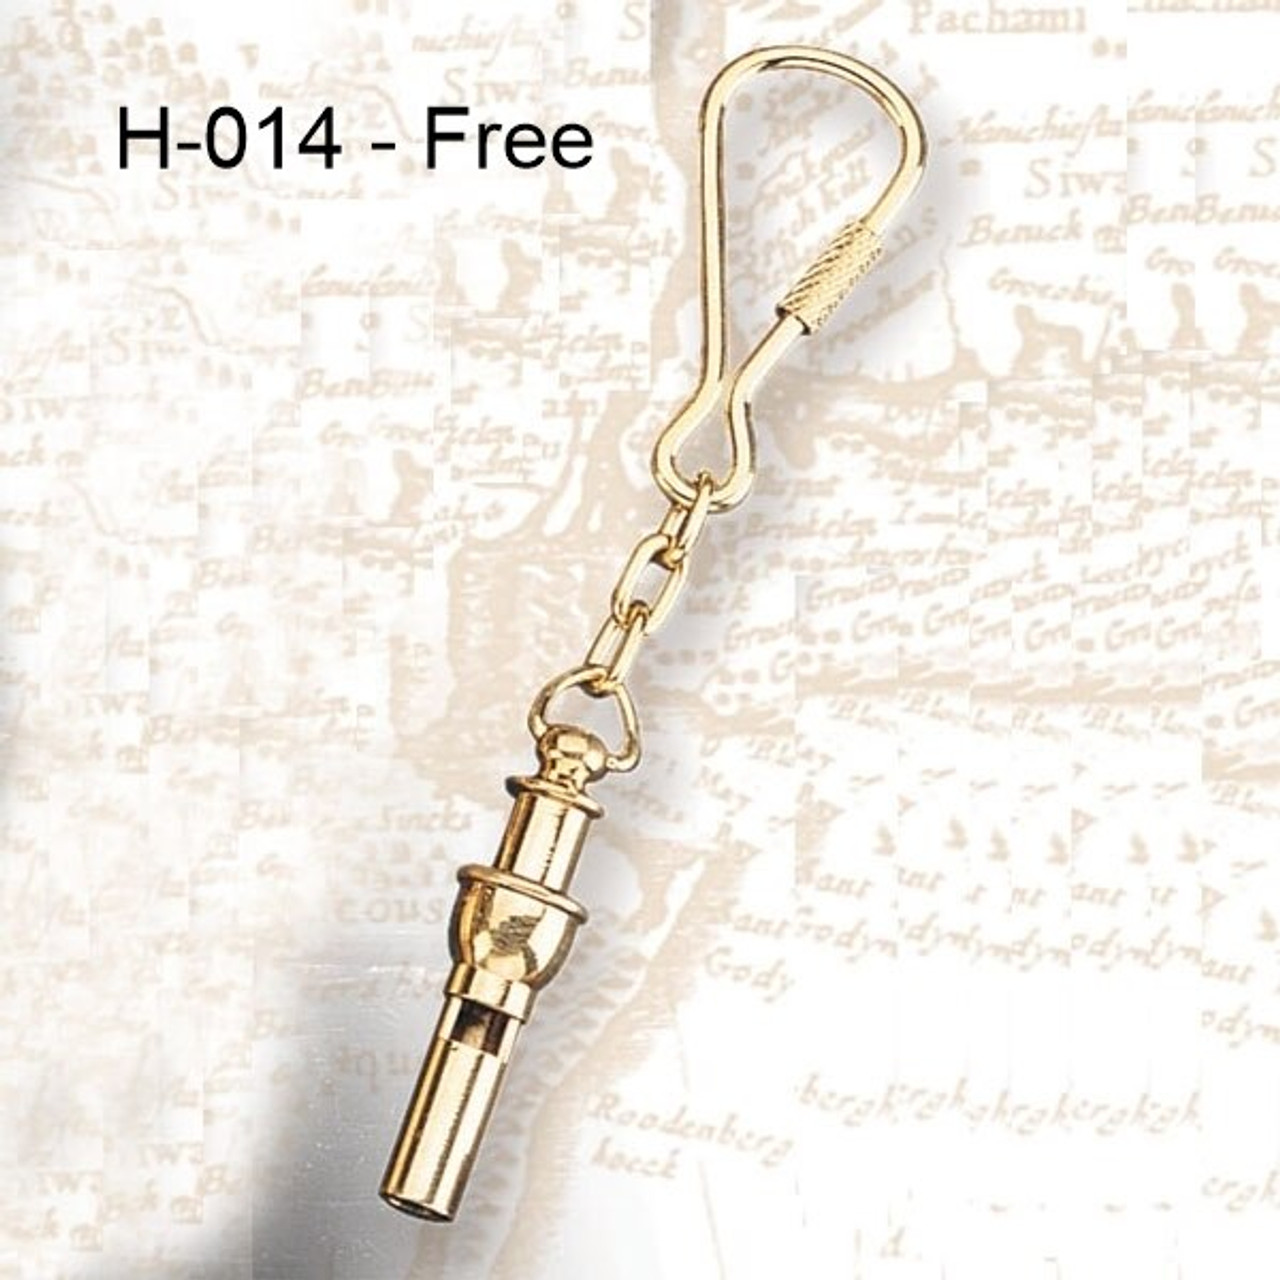 """H - 014 -  Bosun's Whistle Key Chain Option Free with Purchase of (FB-08) 8"""" Brass """"Fire"""" Bell"""